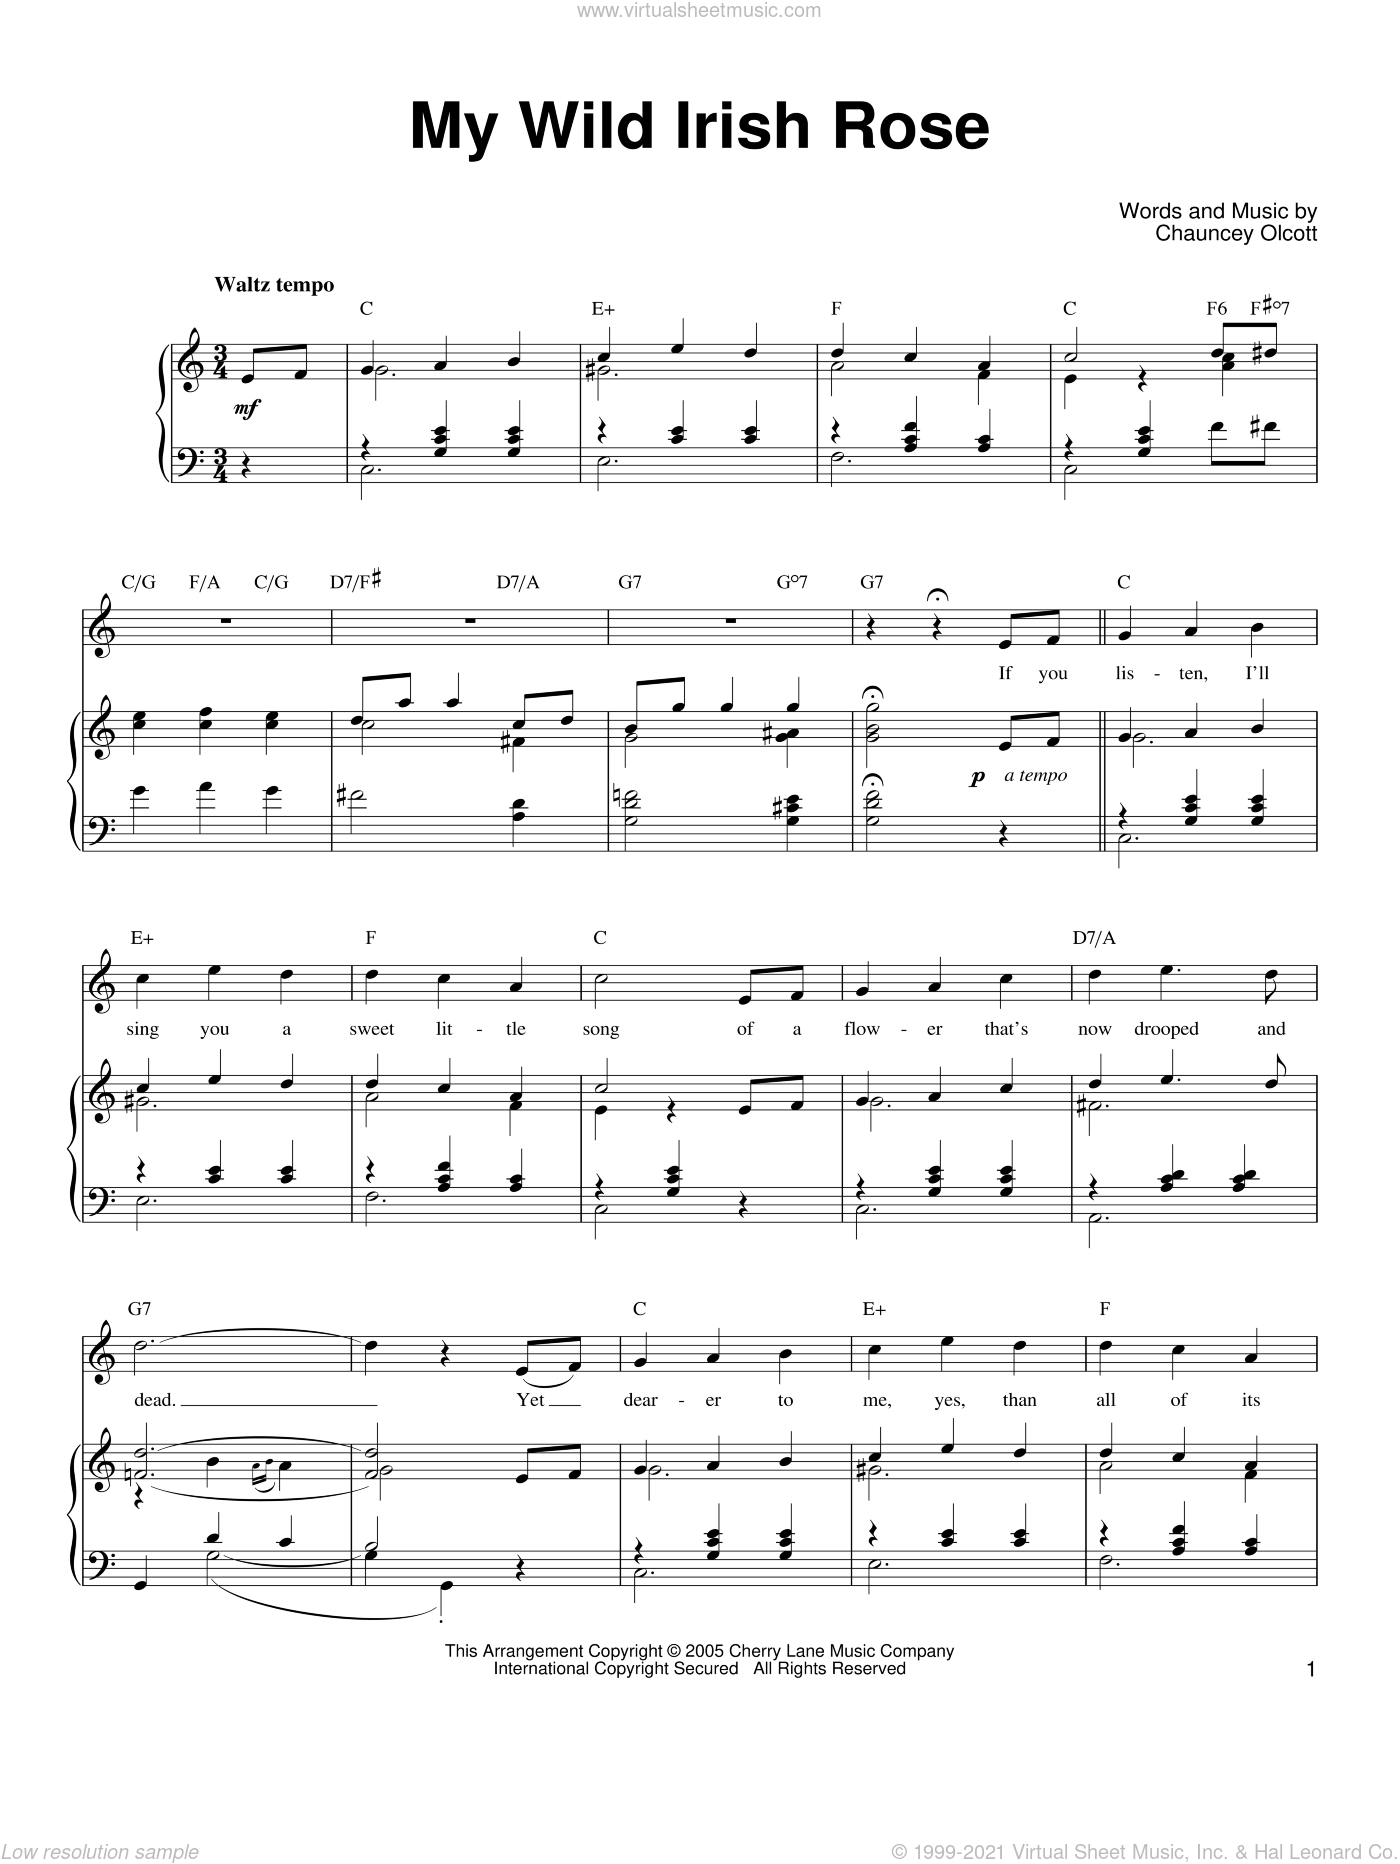 My Wild Irish Rose sheet music for voice, piano or guitar by Ronan Tynan and Chauncey Olcott, intermediate skill level